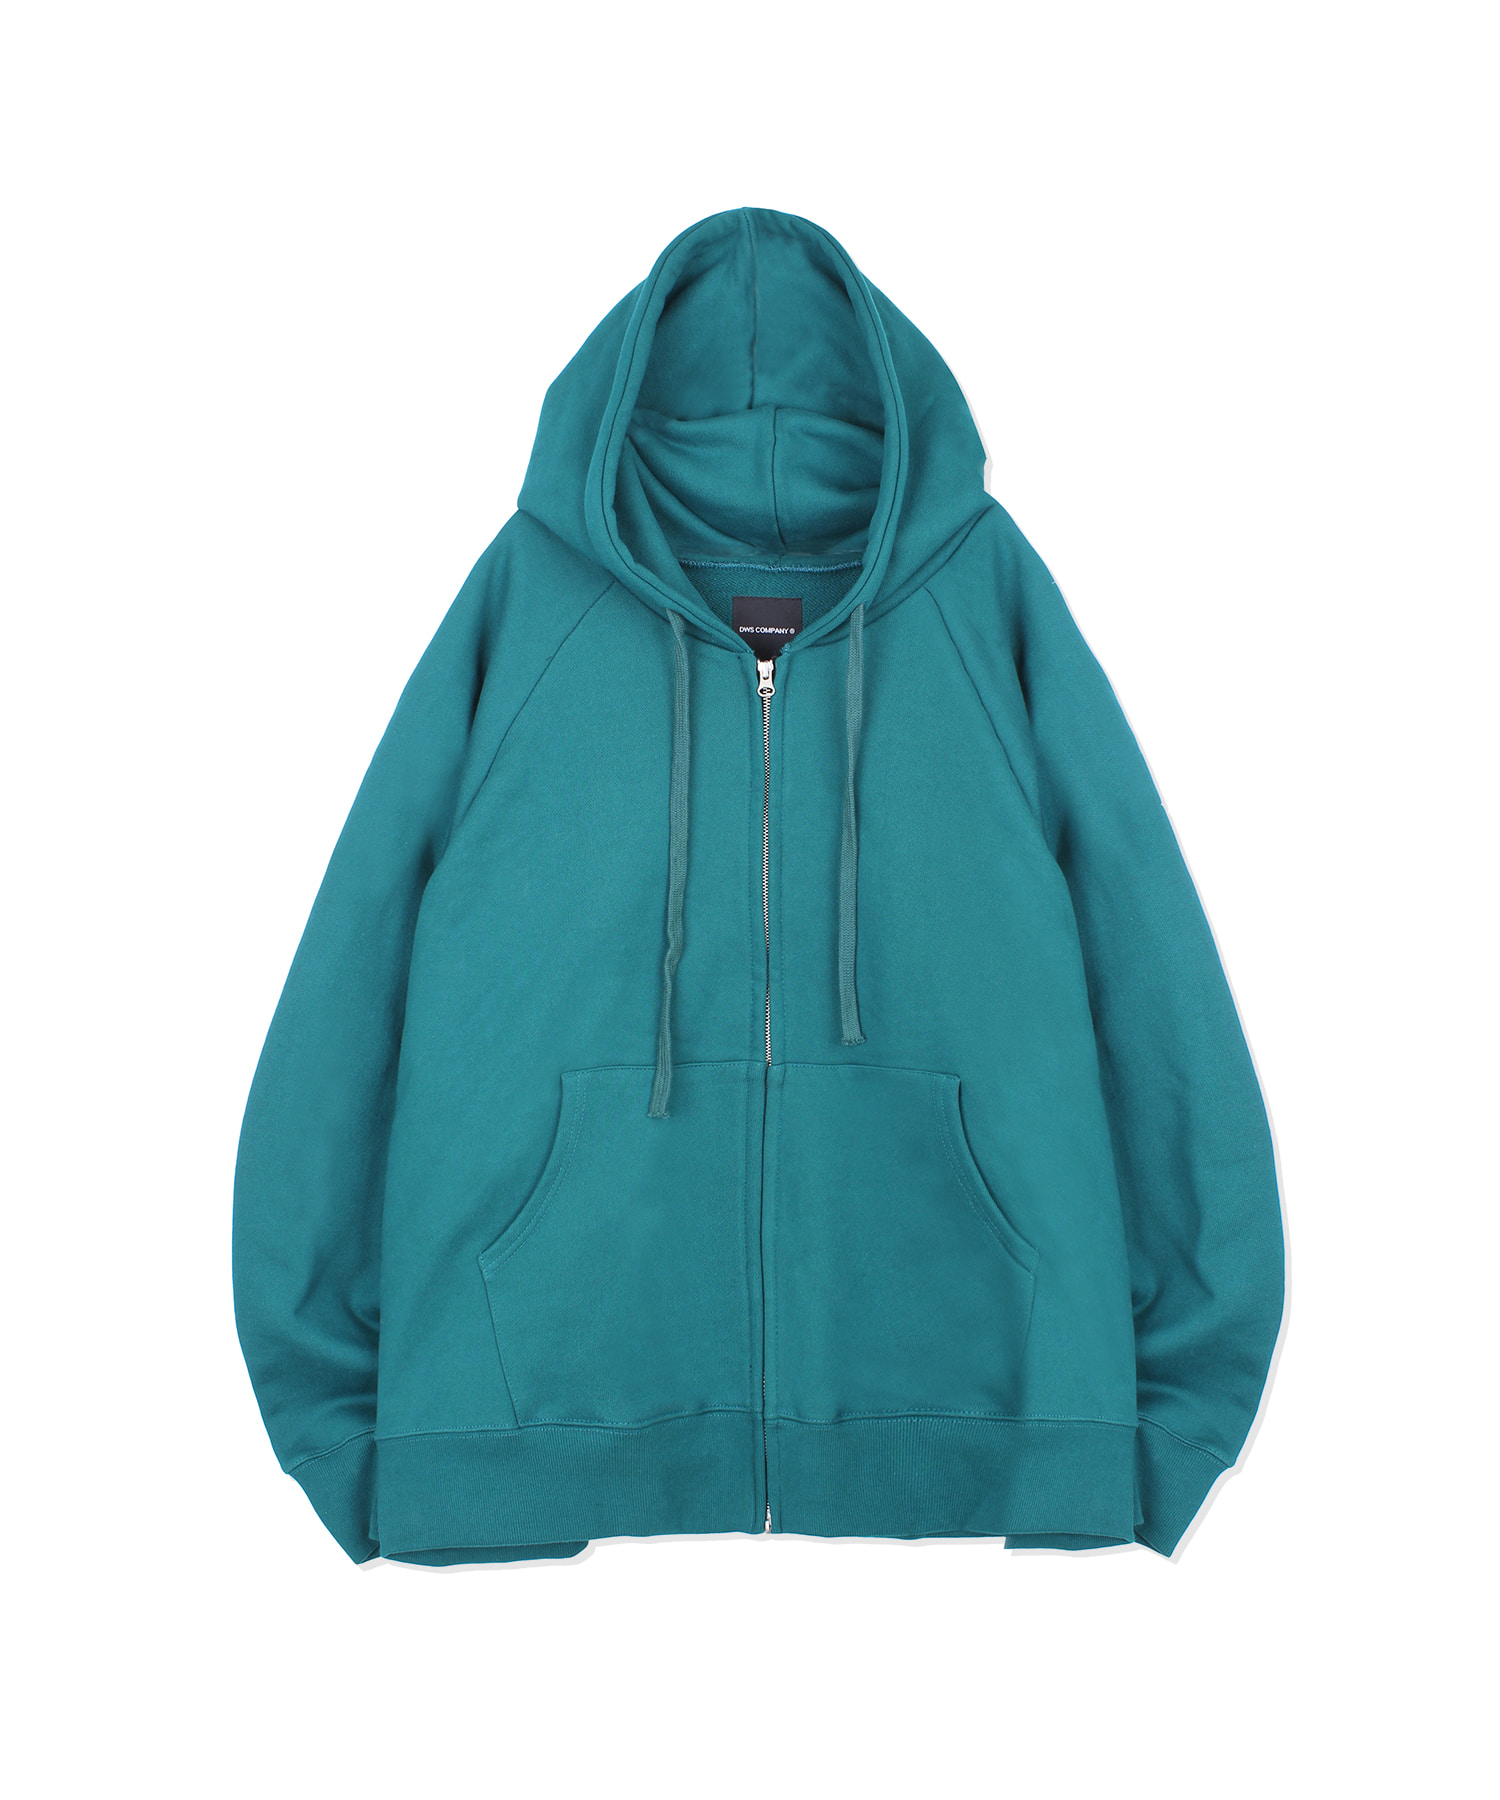 DWS OVER-FIT ZIP-UP HOODIE(BLUE GREEN)